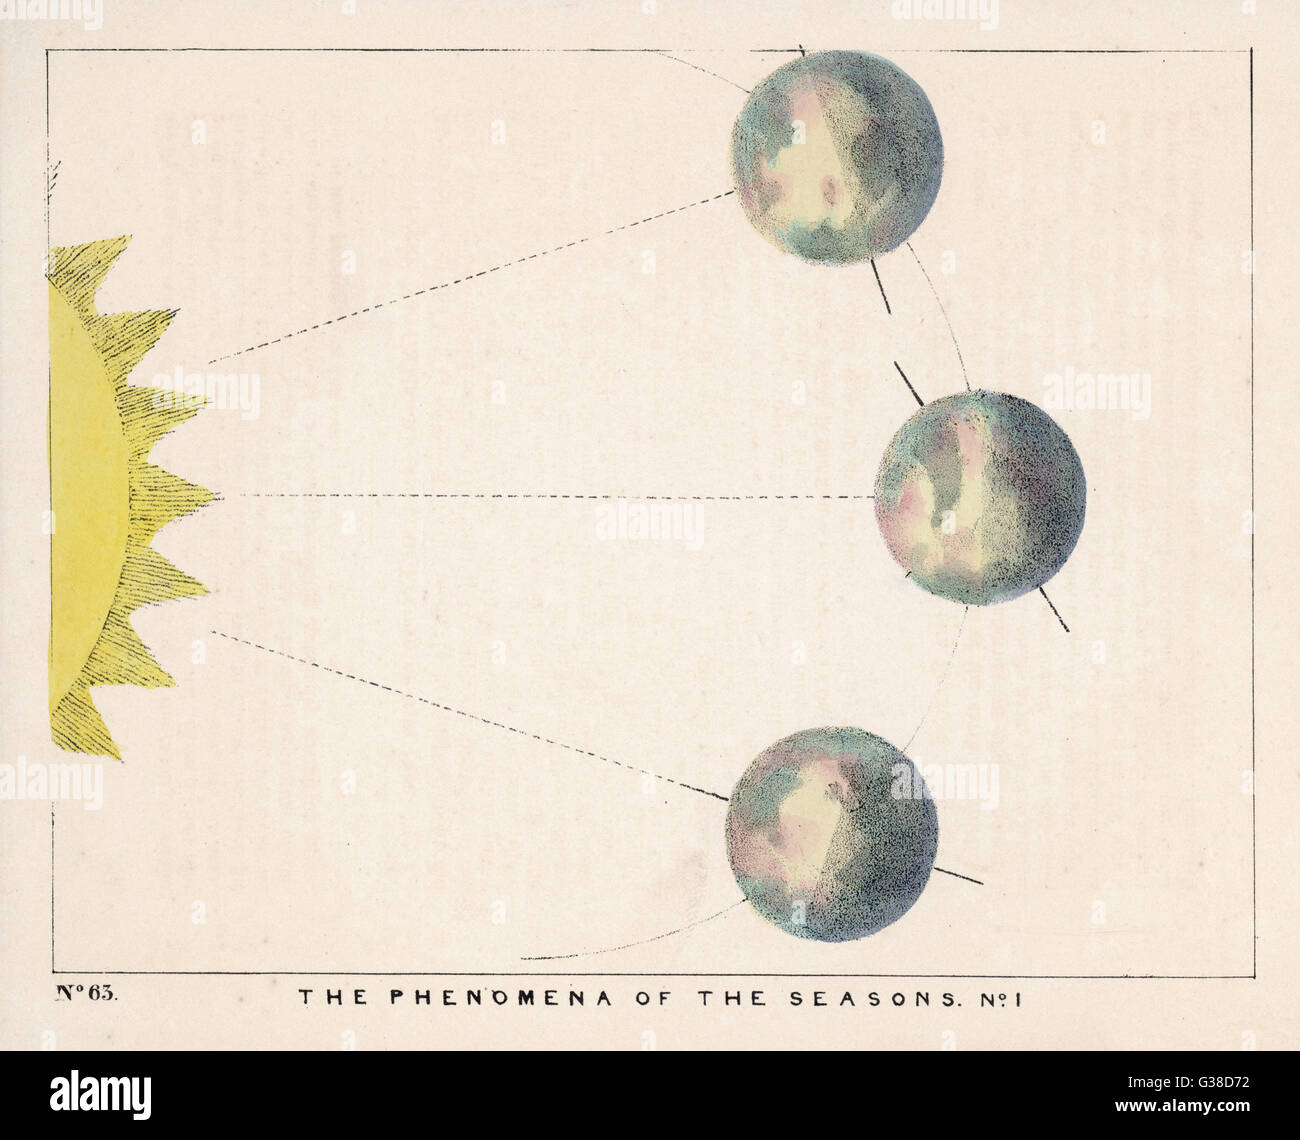 The phenomena of the seasons -   number one       Date: 1849 - Stock Image